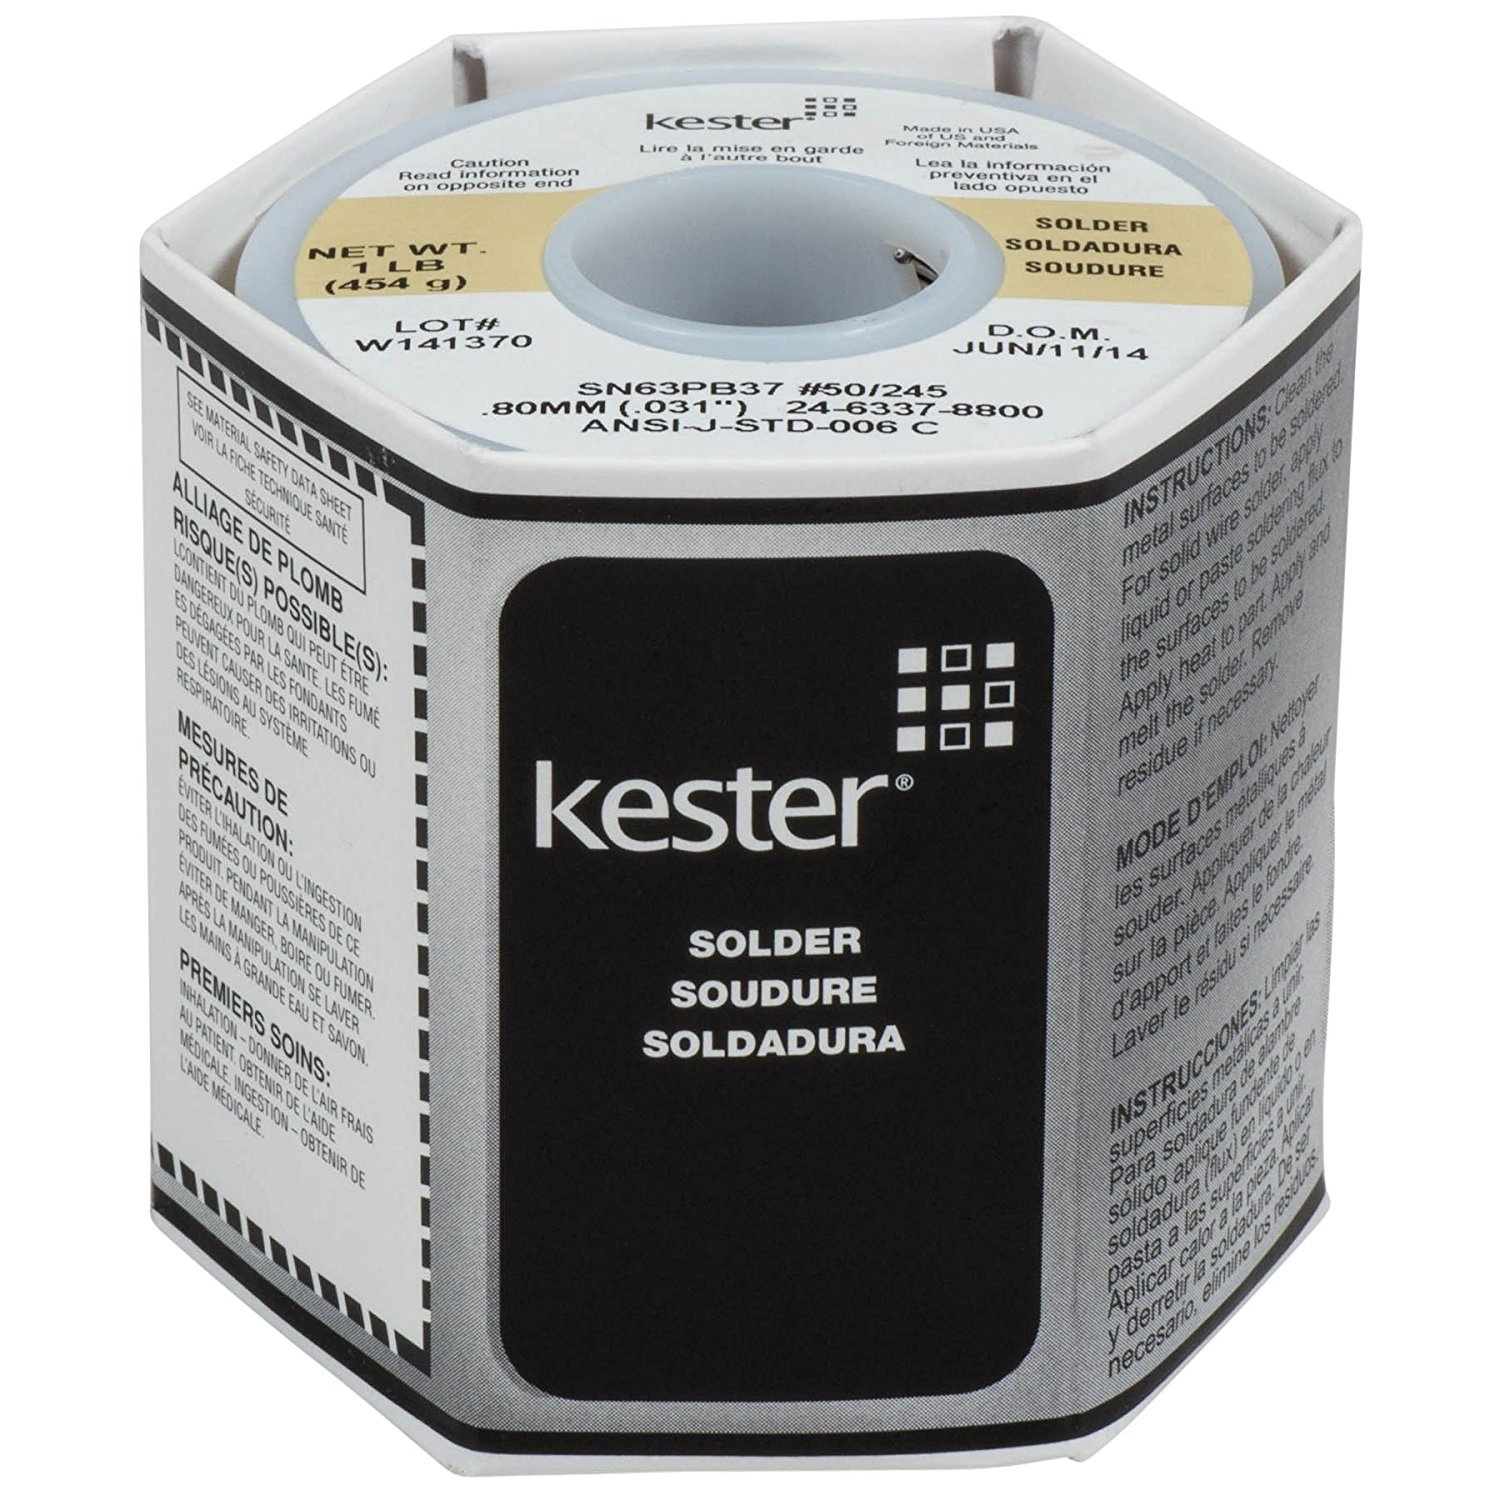 Kester 24-6337-8800 50 Activated Rosin Cored Wire Solder Roll, 245 No-Clean, 63/37 Alloy, 0.031'' Diameter by Kester Solder